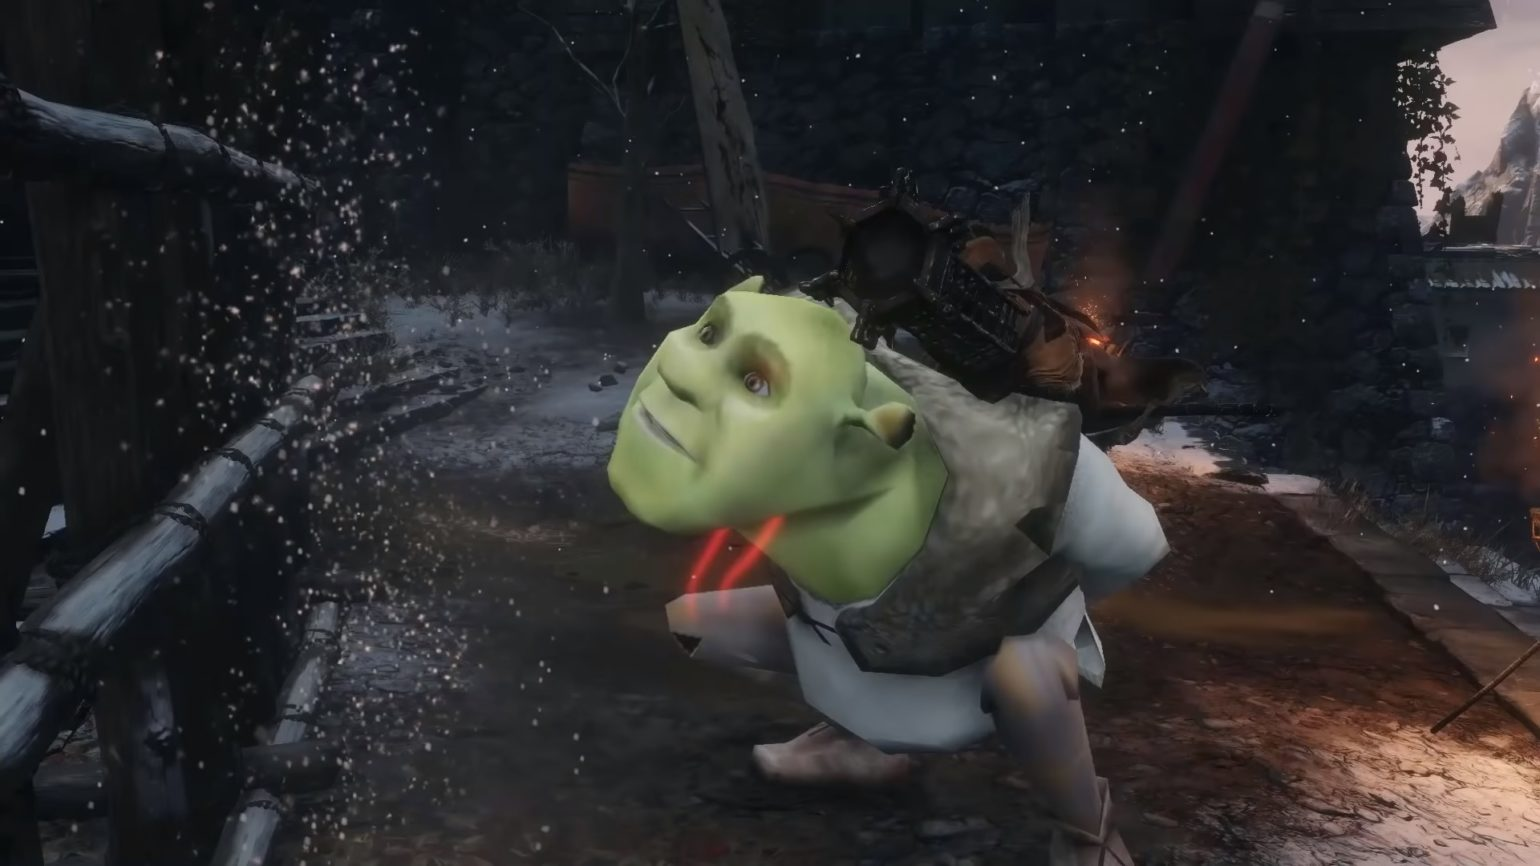 sekiro: shadows die twice shrek